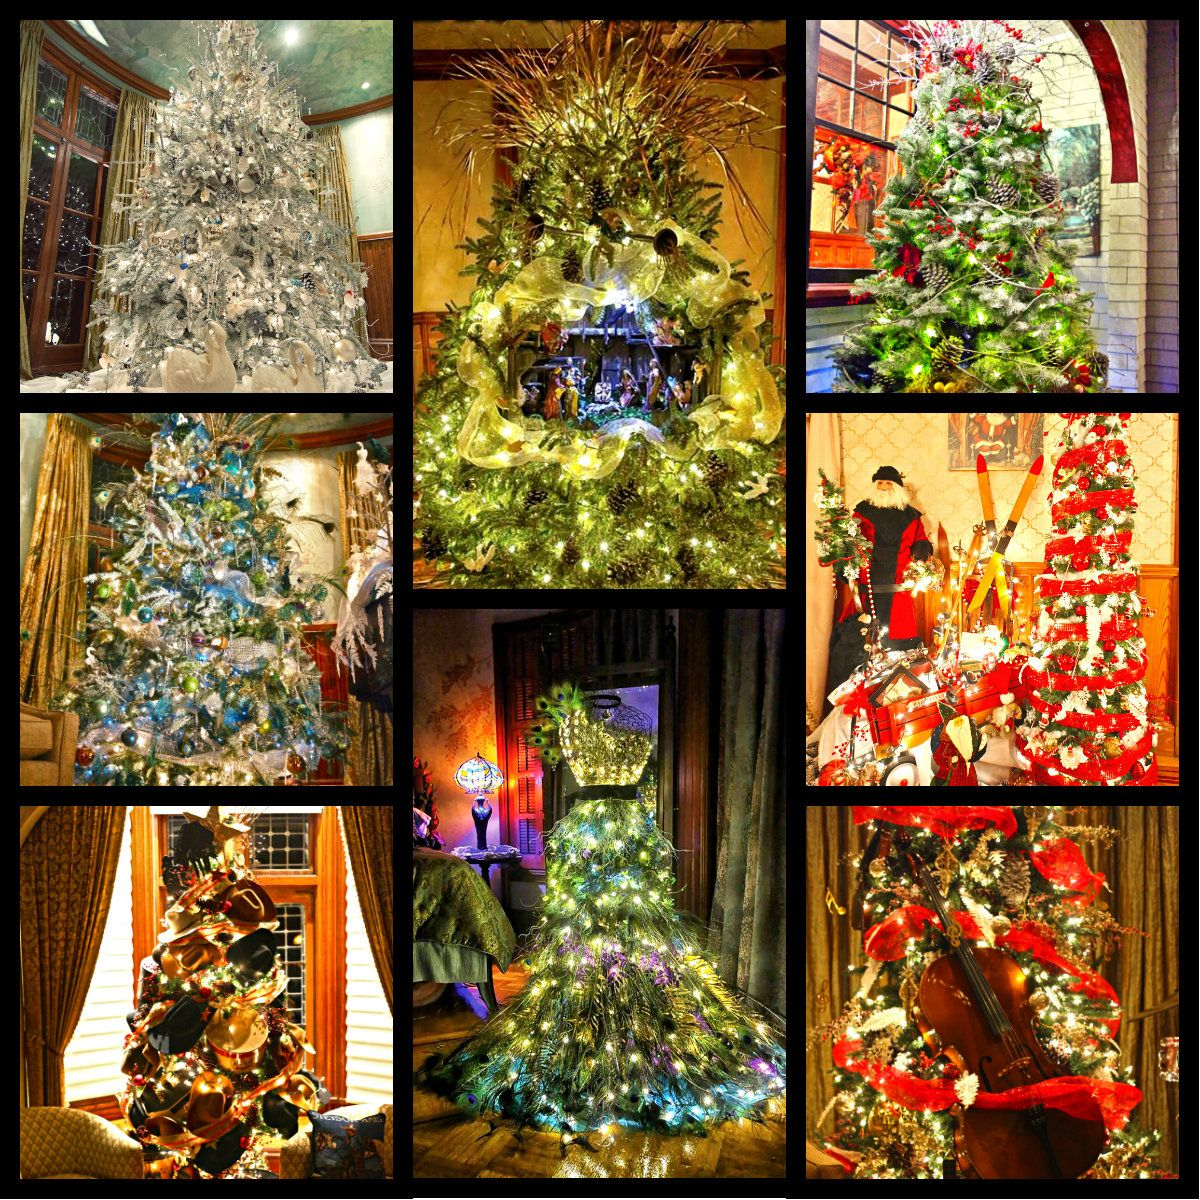 Stetson Mansion Christmas Spectacular 2020 Stetson mansion   Christmas tours, Modern christmas, Christmas